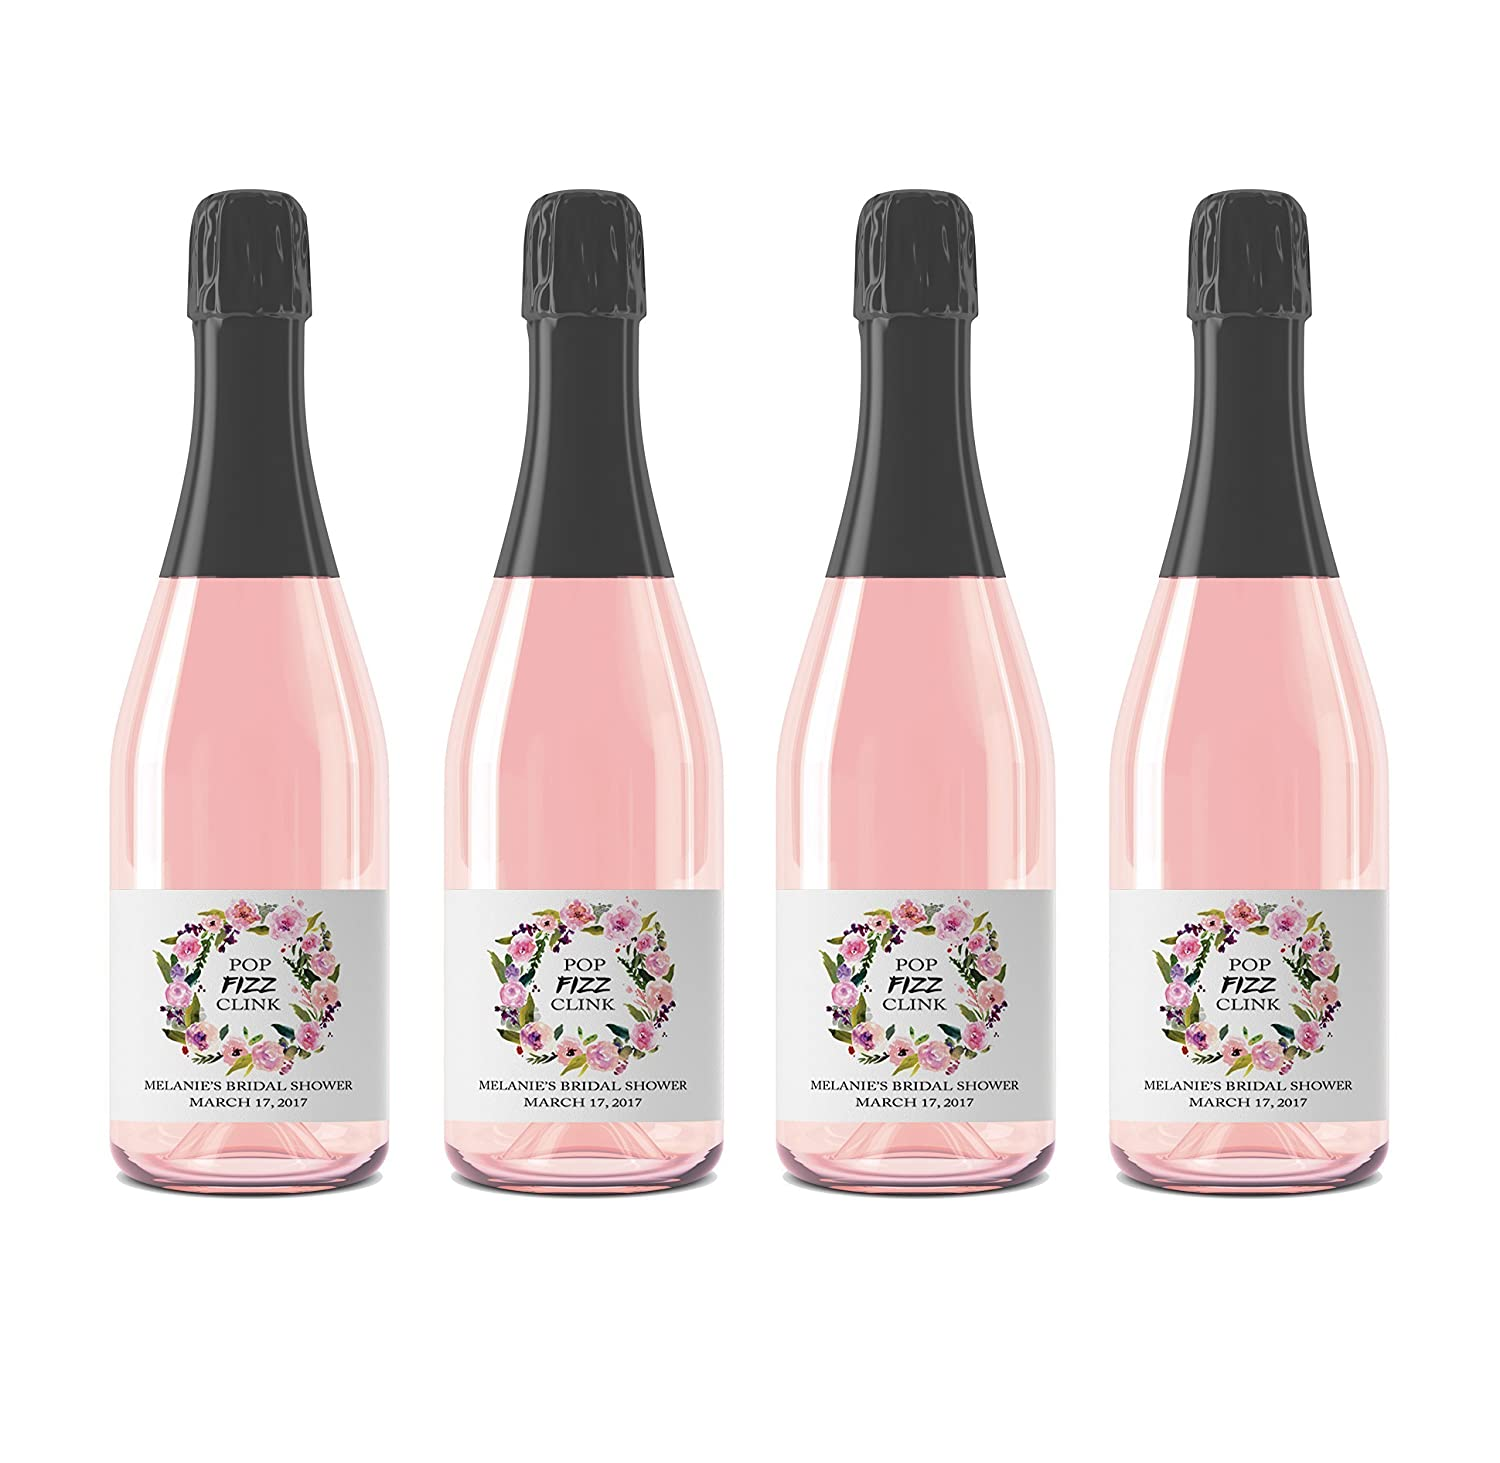 Amazon.com: Pop Fizz Clink! ○ SET of 12 ○ Floral Cheers to the ...